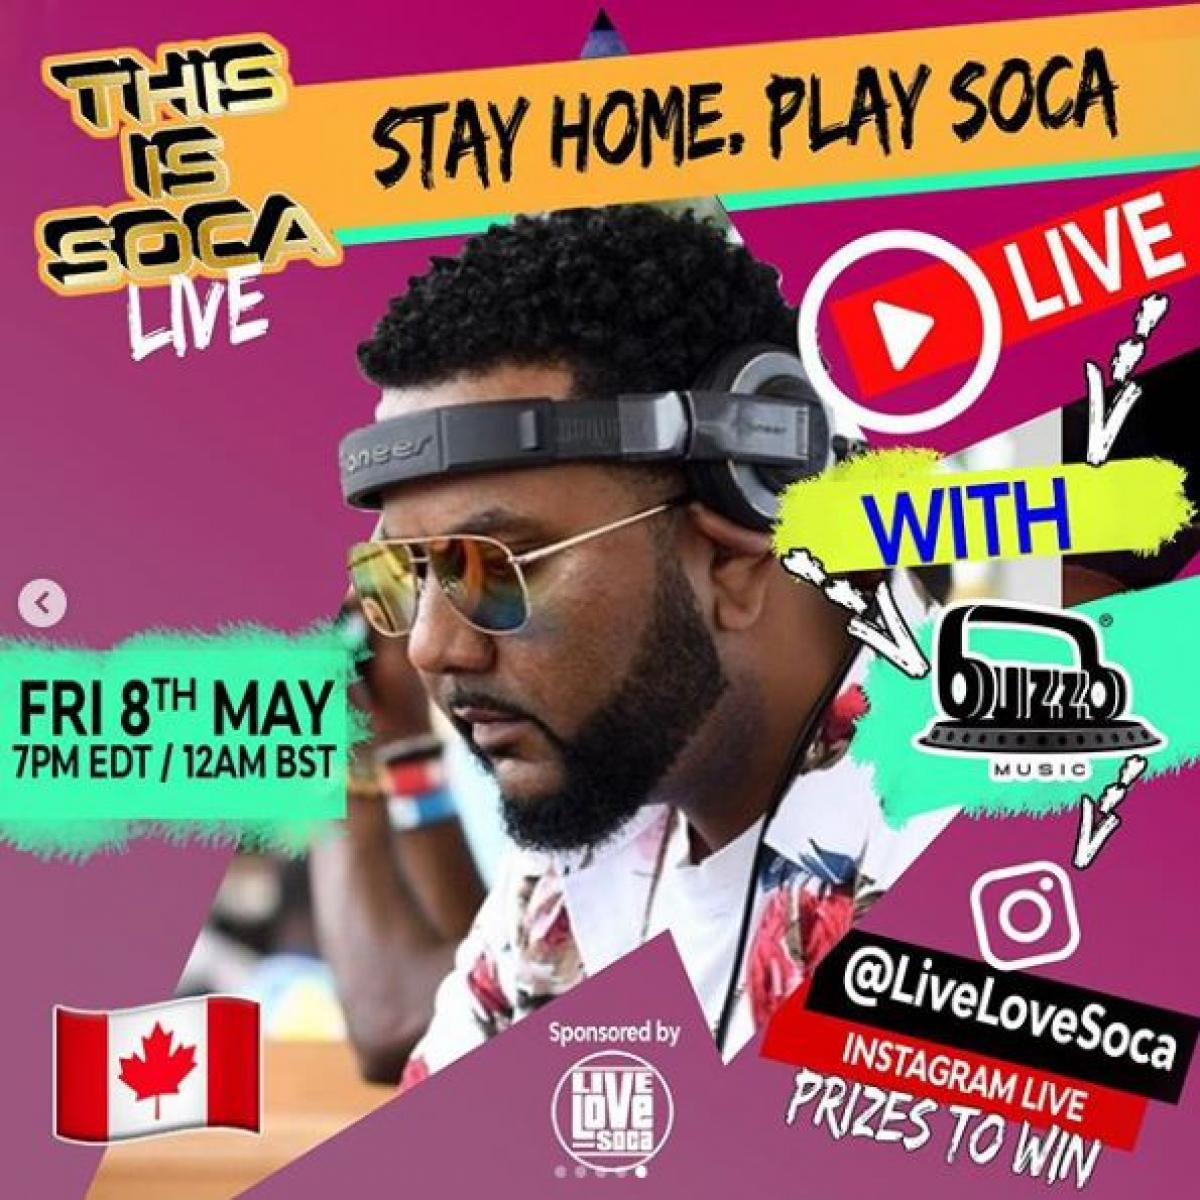 This Is Soca flyer or graphic.